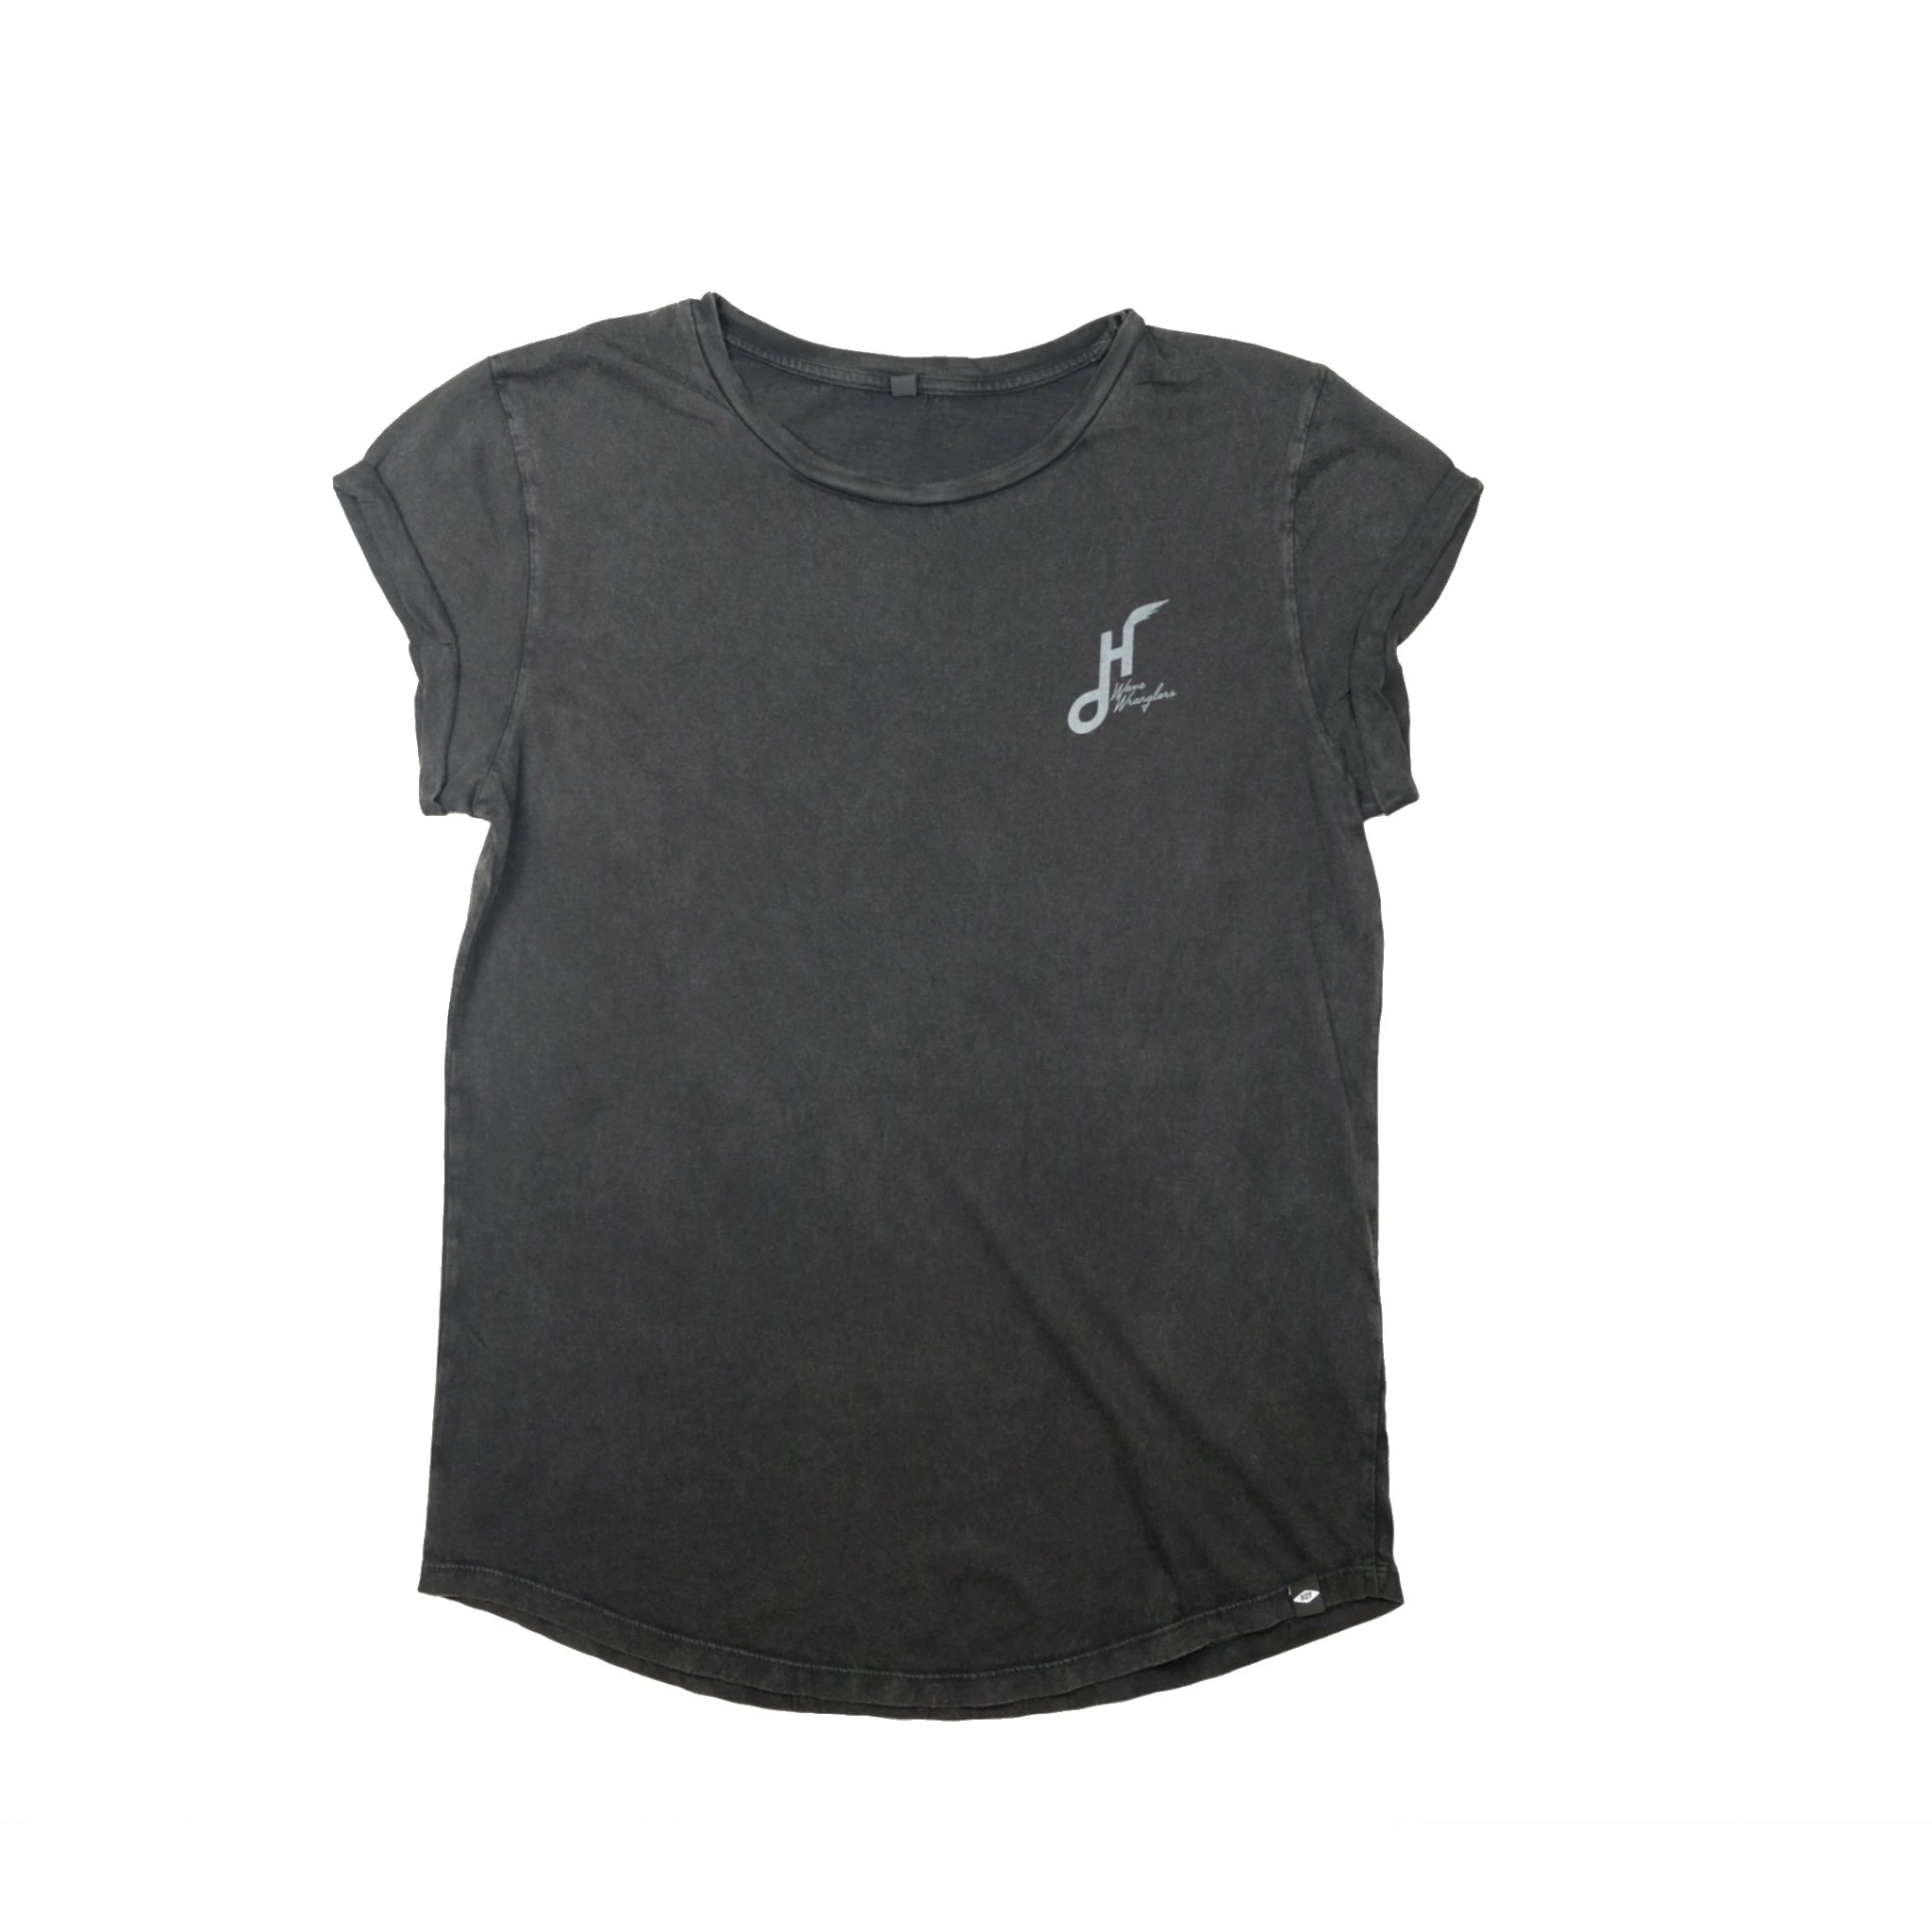 Women's Hoy Wave Wranglers Organic T-shirt - Dusty Black